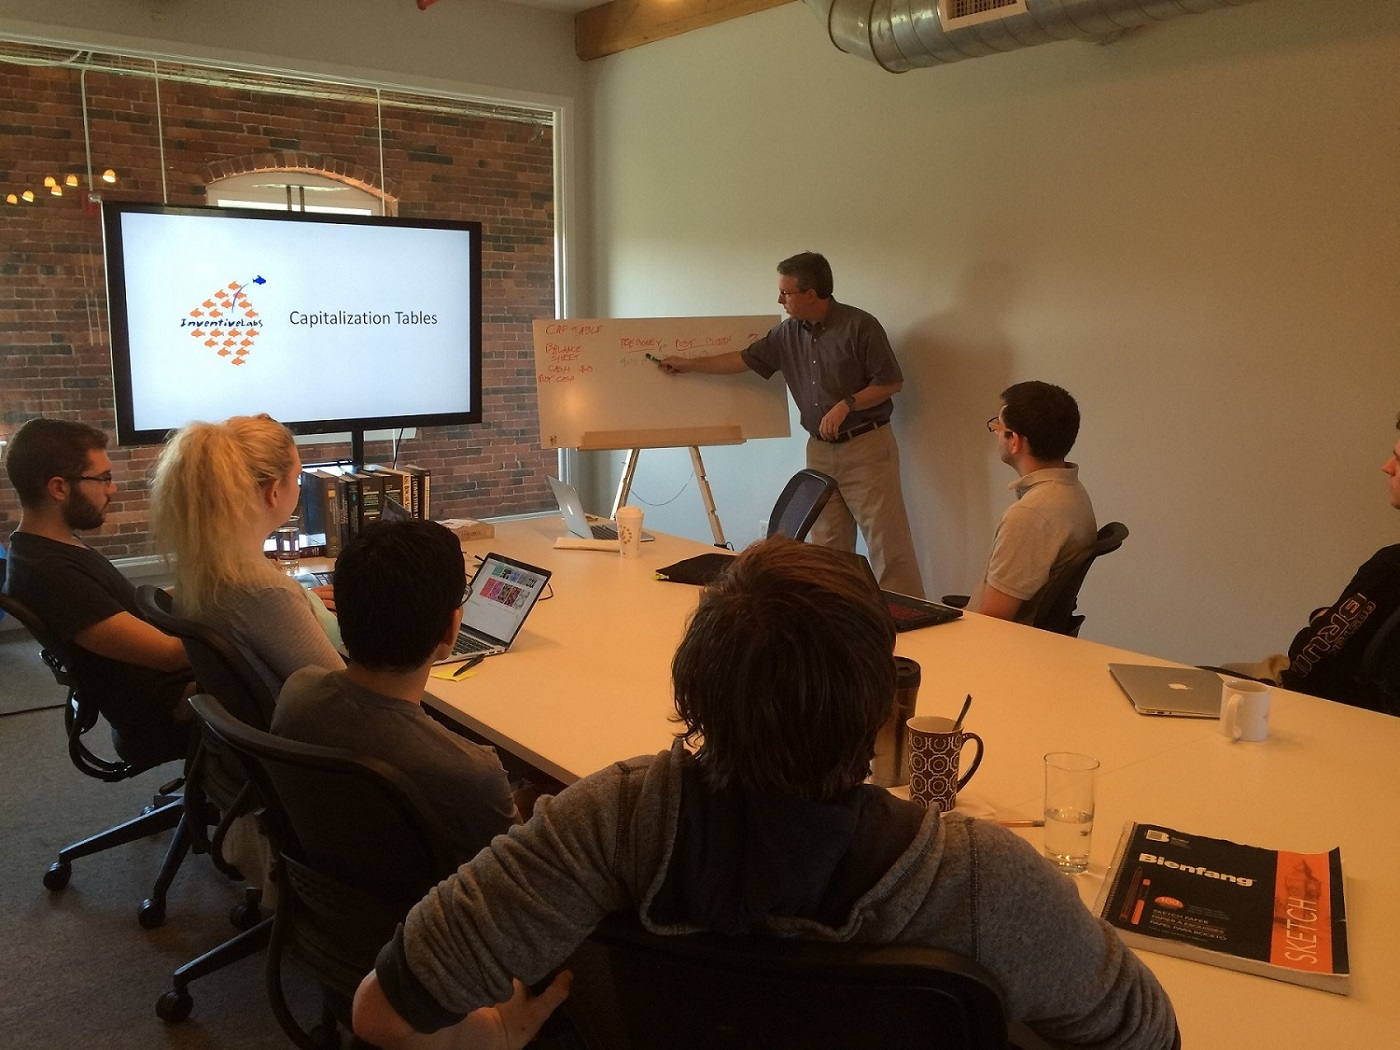 Learning business concepts at InventiveLabs